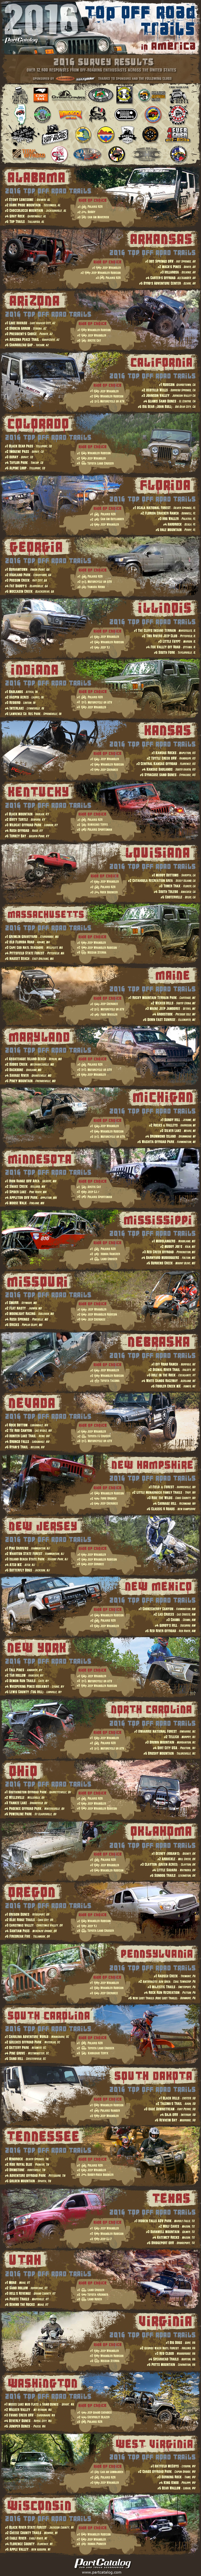 2016-top-offroad-trails-parks-in-america-1-jpg-pagespeed-ce-u7ashxxonp